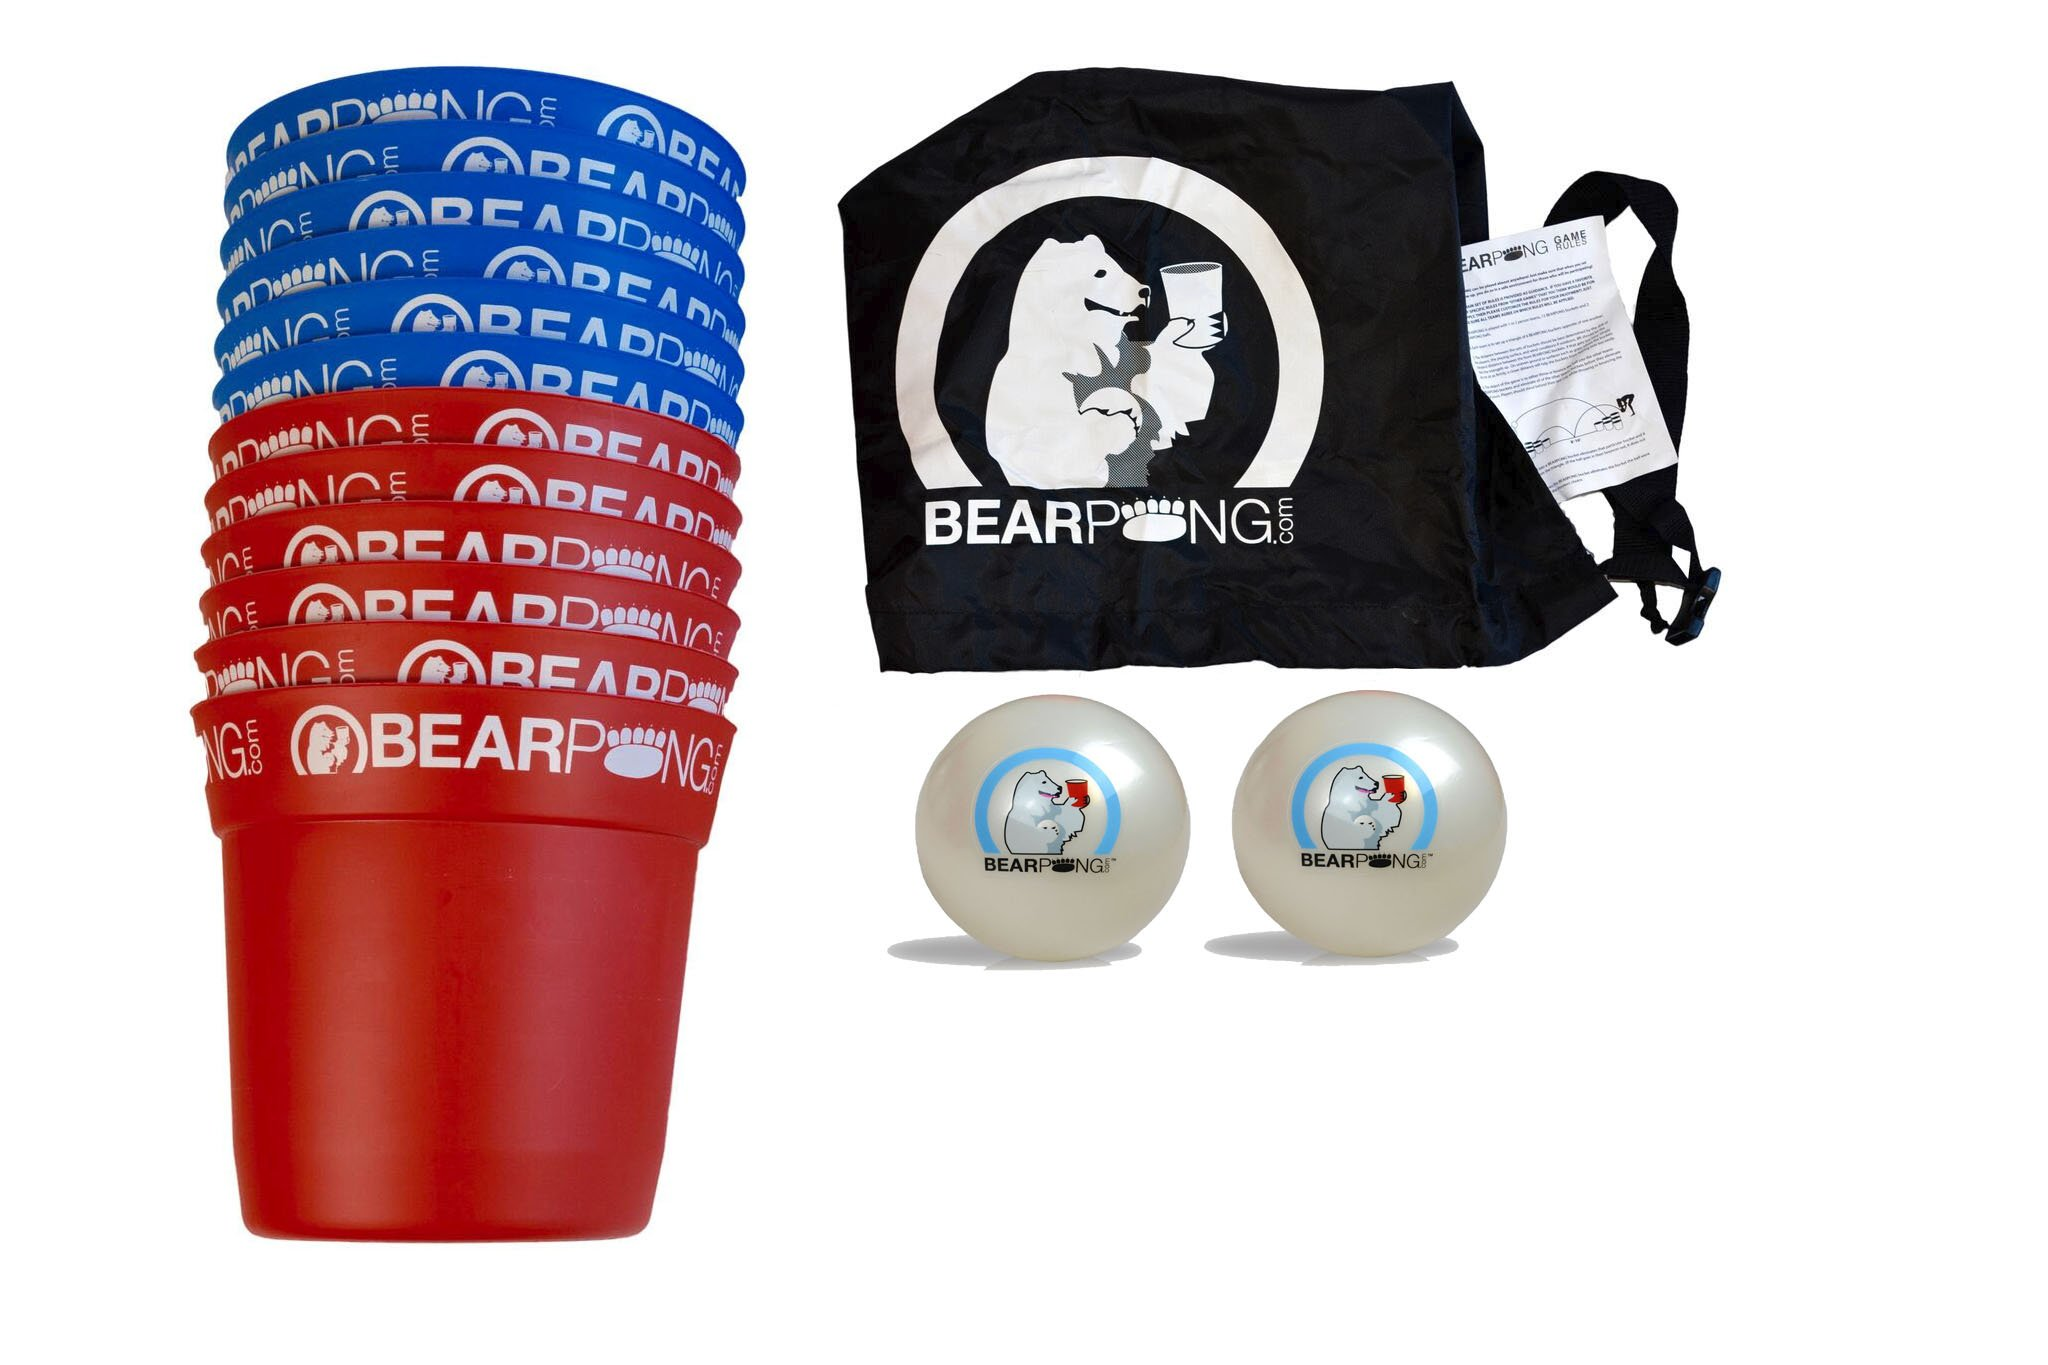 Bearpong Bearpong Game Set: 12 BEARPONG Buckets, 2 BEARPONG Balls with Carrying Case, and Instruction (Red/Blue) by Bear Pong